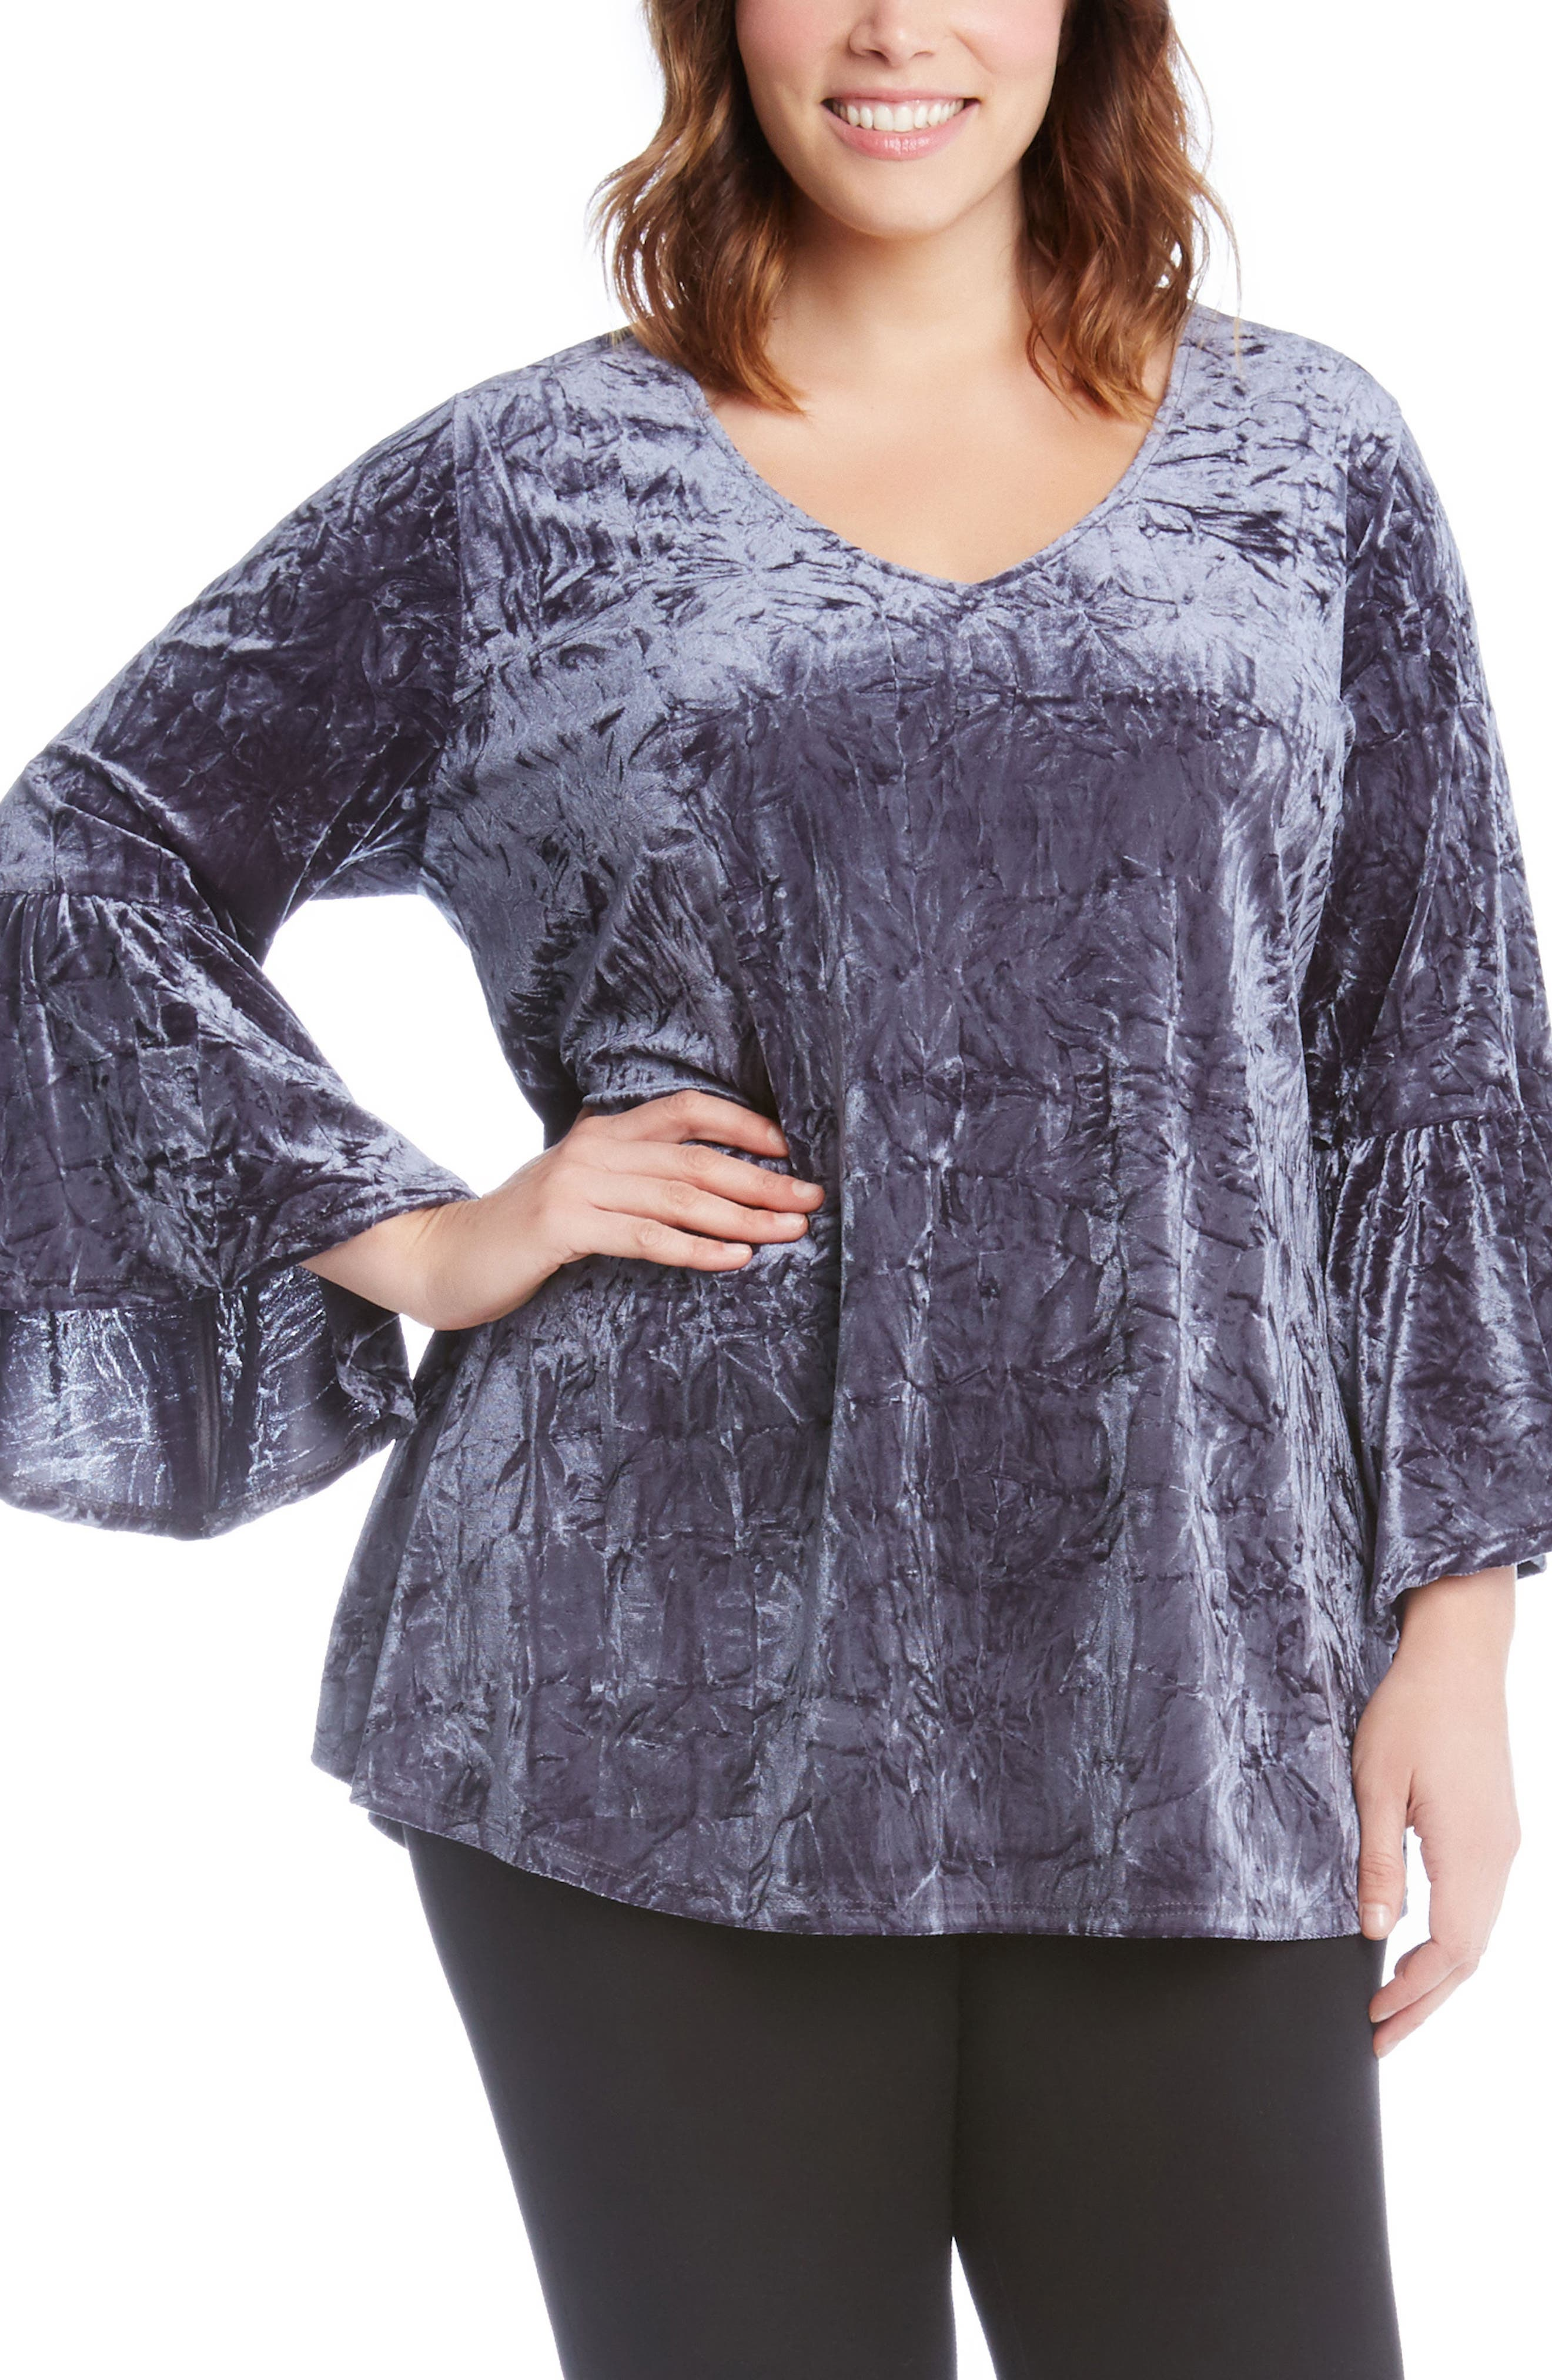 Bell Sleeve Crushed Velvet Top,                         Main,                         color, Gray